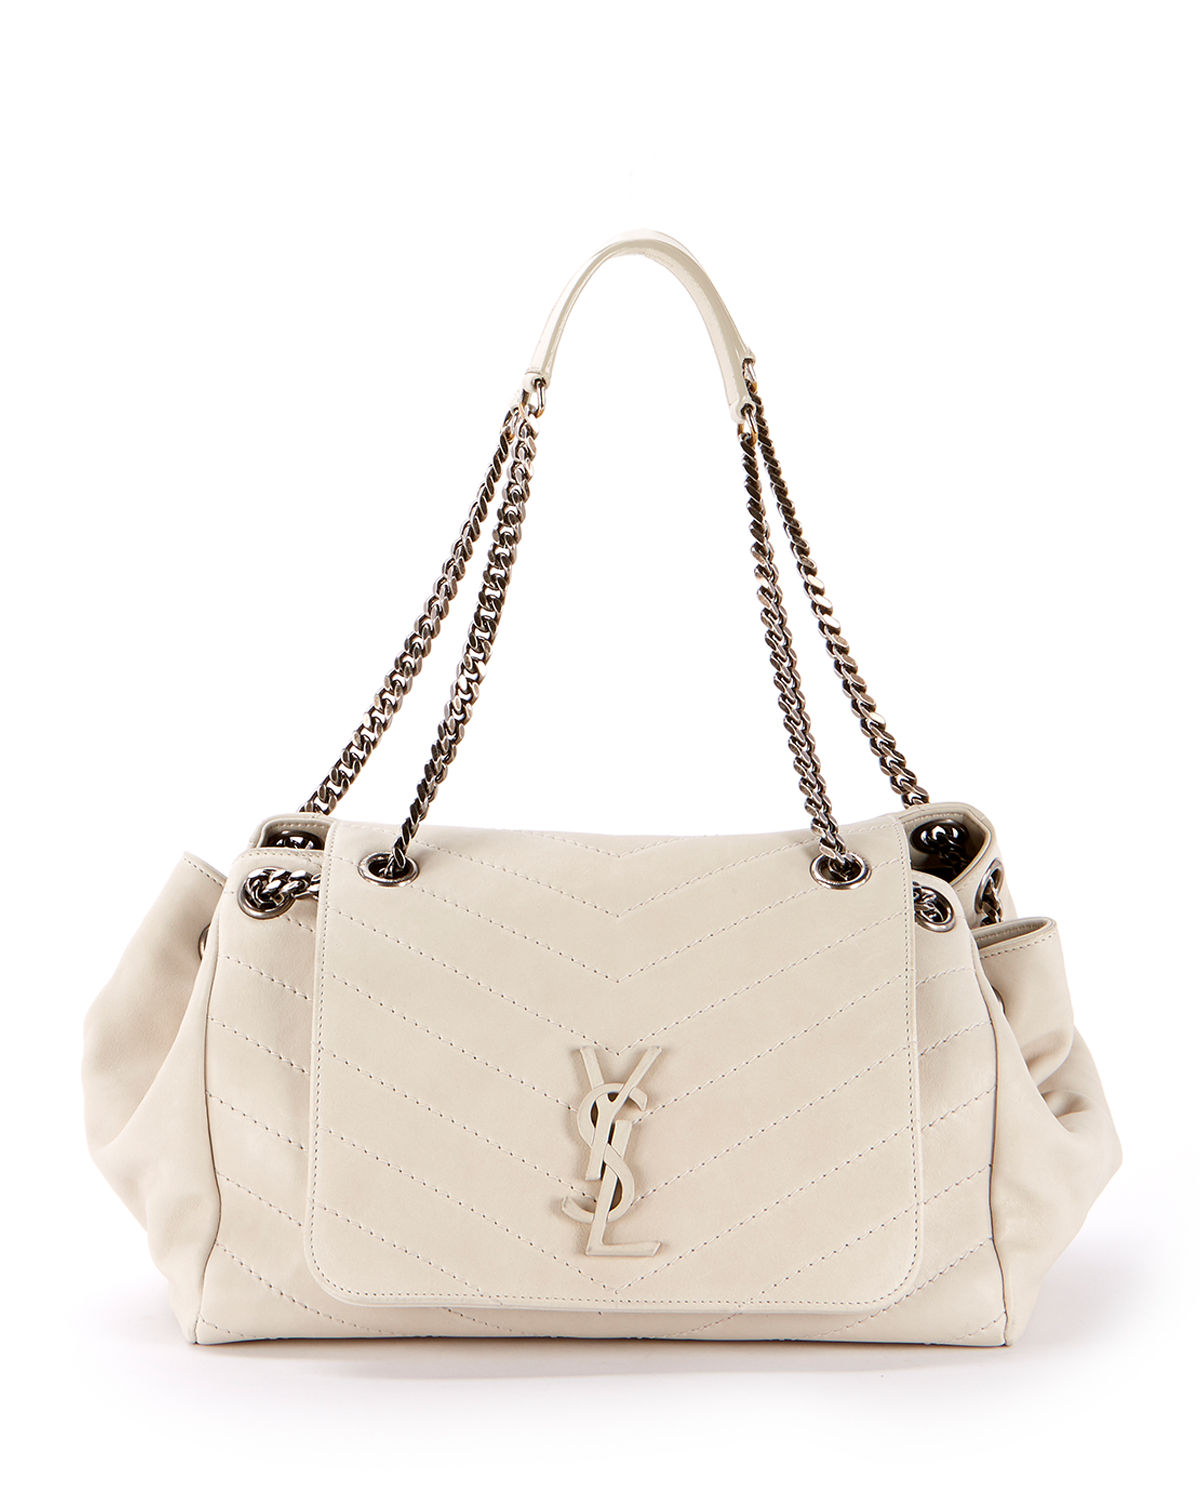 657e3268482 Saint Laurent Nolita Large Monogram YSL Double Chain Shoulder Bag ...